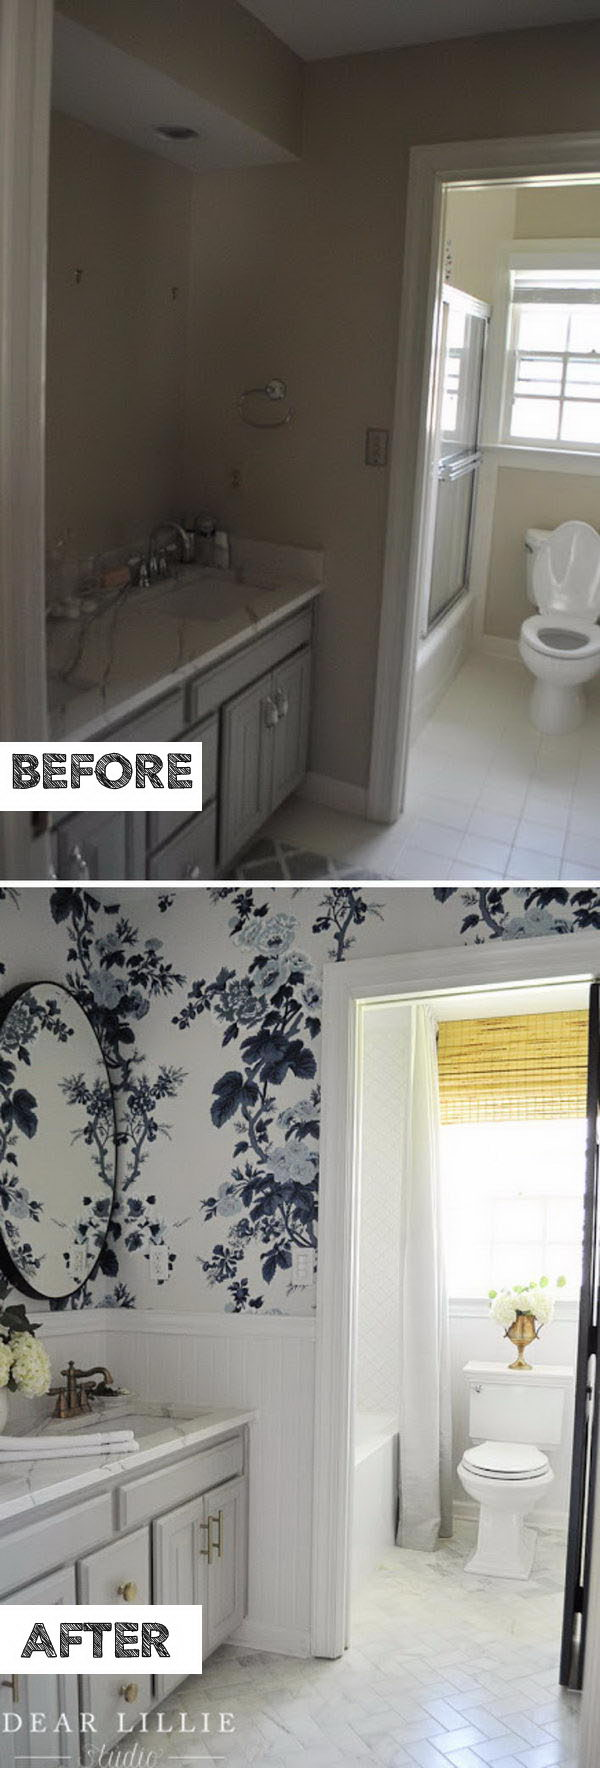 Go For A Fresh, Bright Update Using Wallpaper And Beadboard.